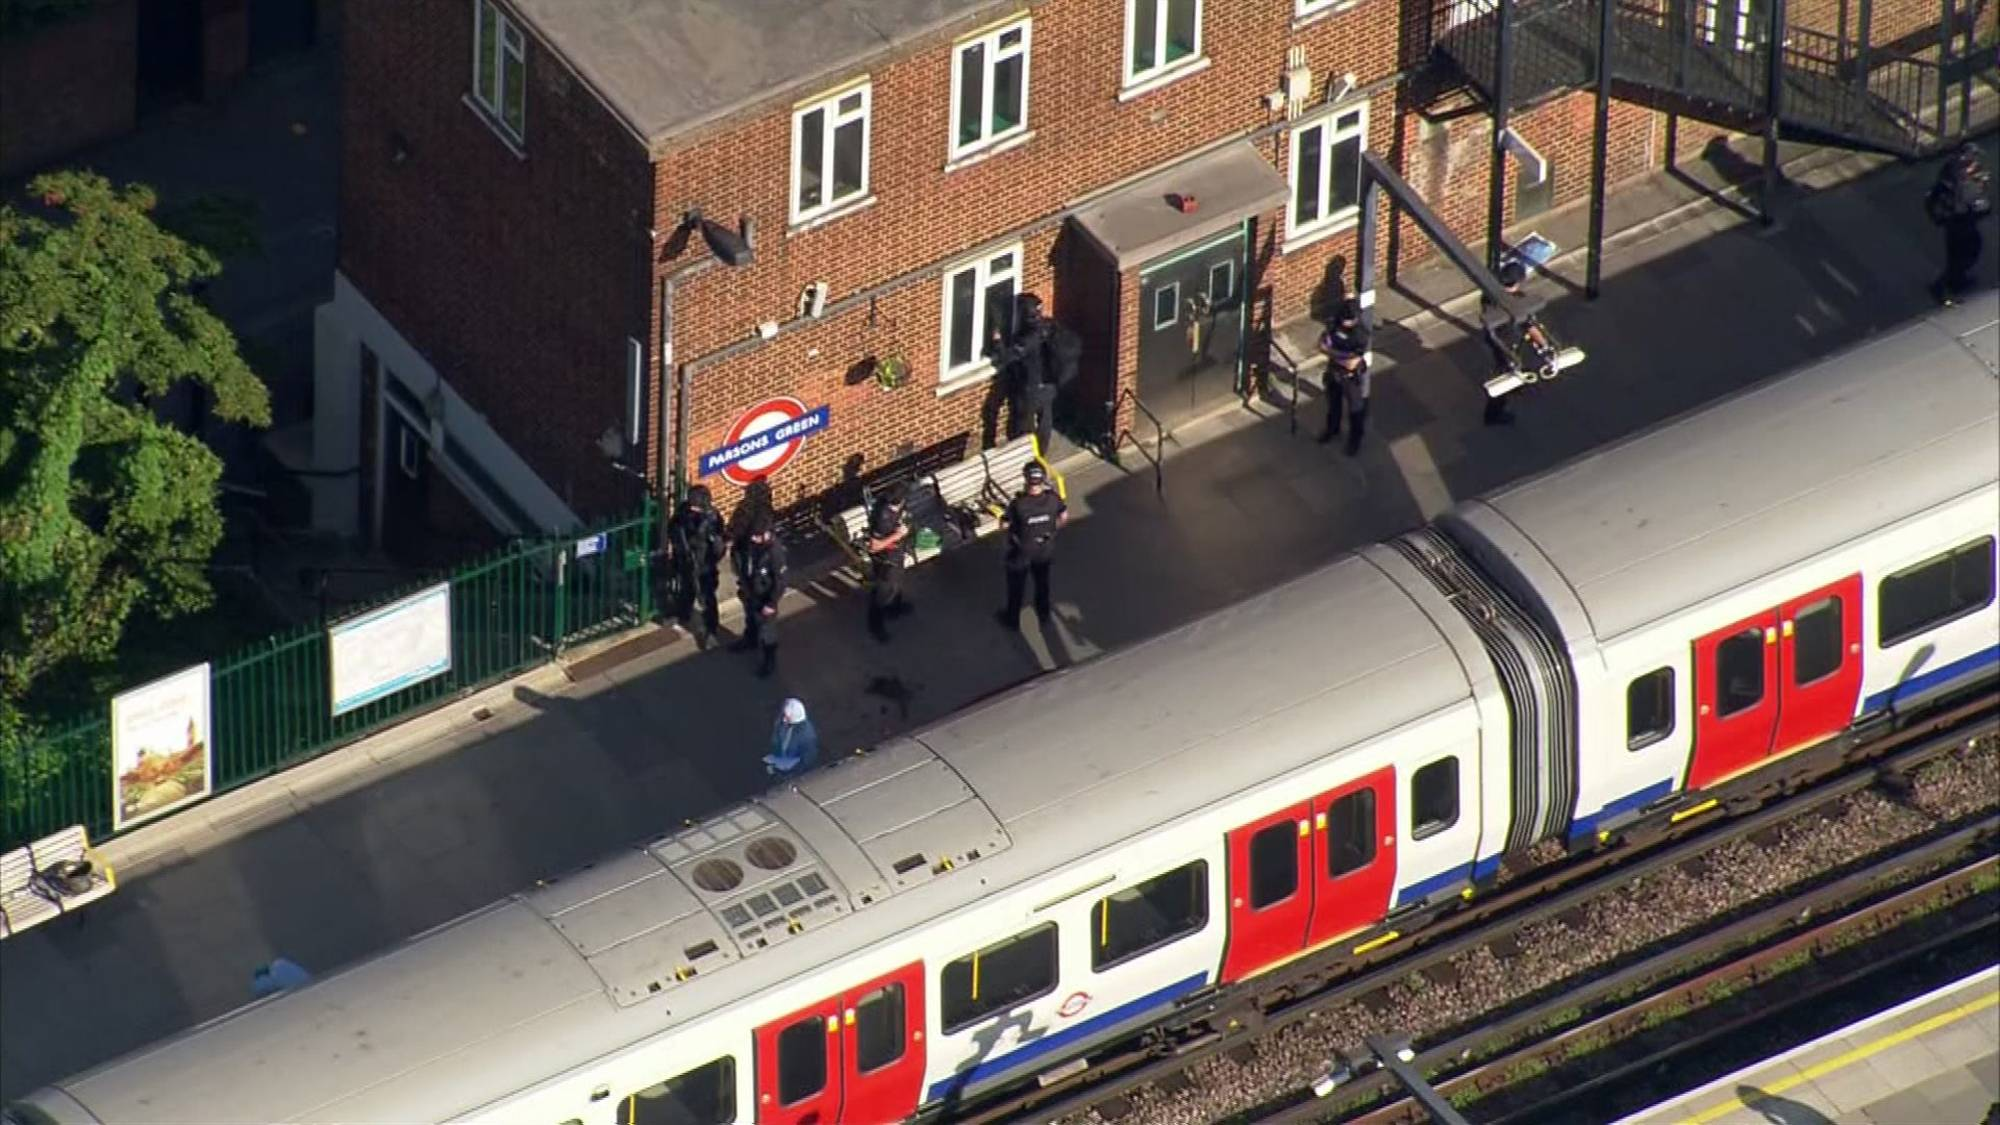 In this aerial image made from video, police officers work at the Parsons Green Underground Station after an explosion in London Friday, Sept. 15, 2017. A reported explosion at a train station sent commuters stampeding in panic, injuring several people at the height of London's morning rush hour, and police said they were investigating it as a terrorist attack. (Pool via AP)